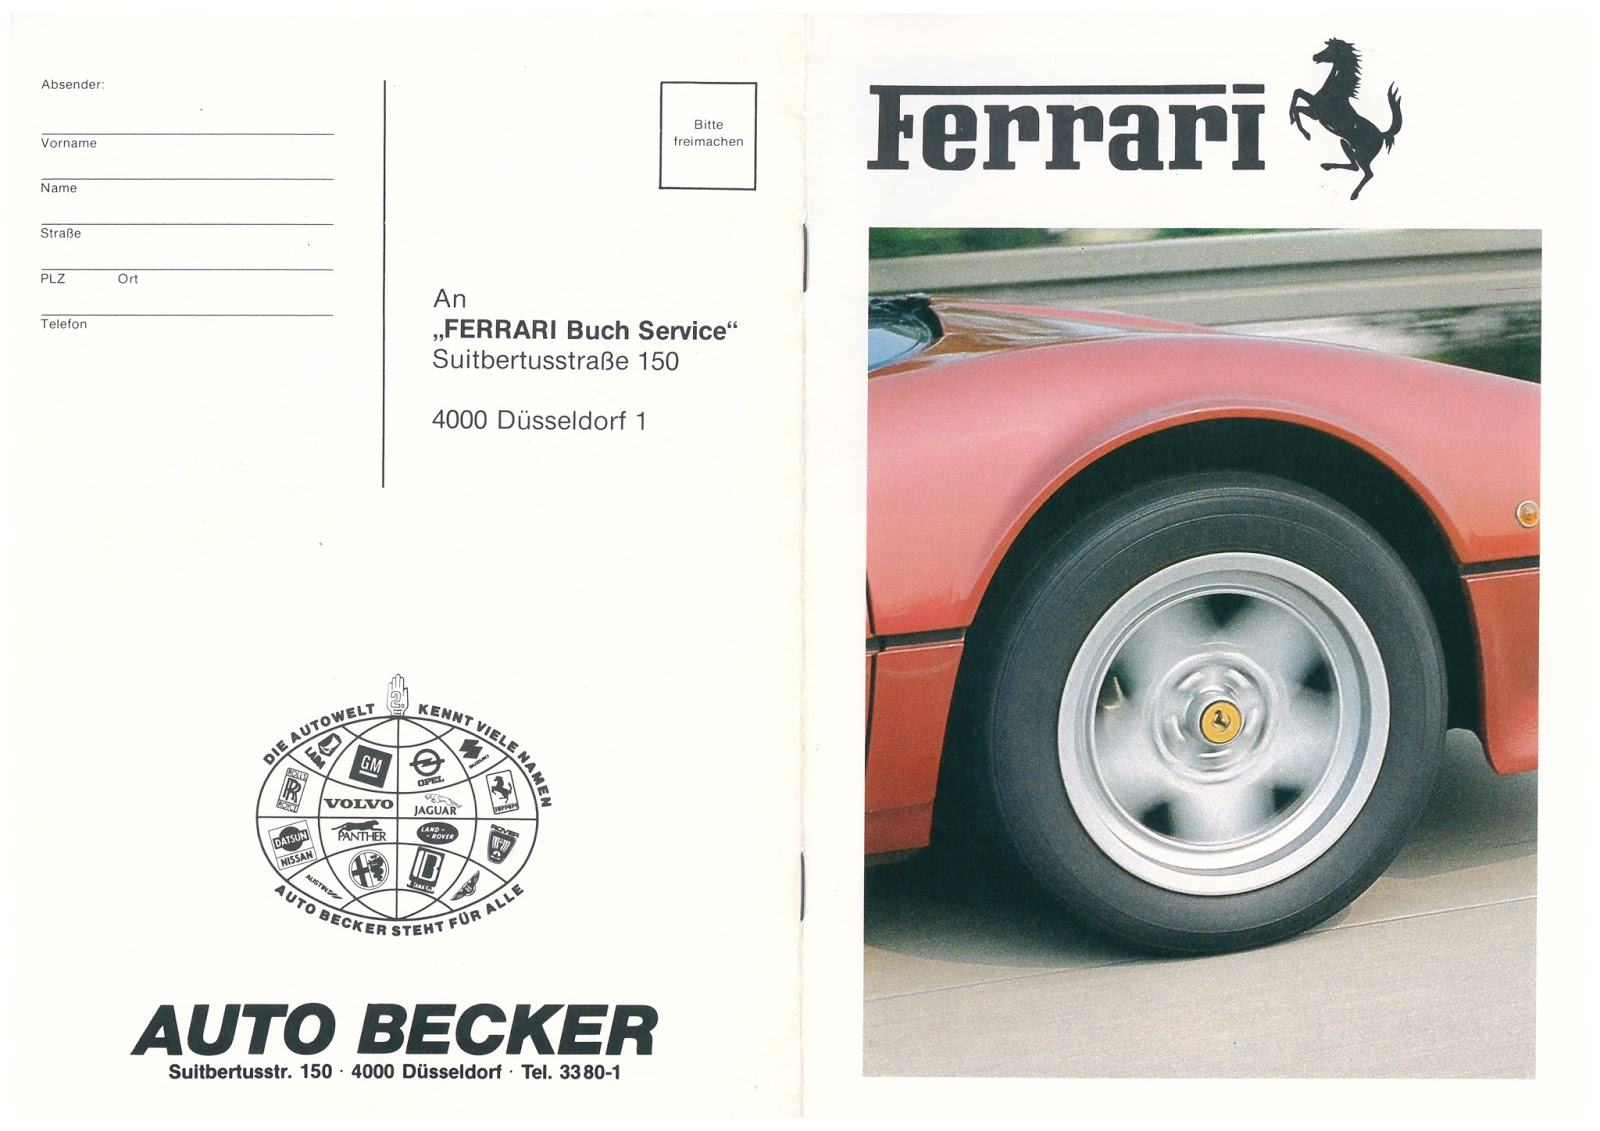 ferrari 400 auto becker pricelist 1984 ferrari 400i flaggschiff des commendatore. Black Bedroom Furniture Sets. Home Design Ideas